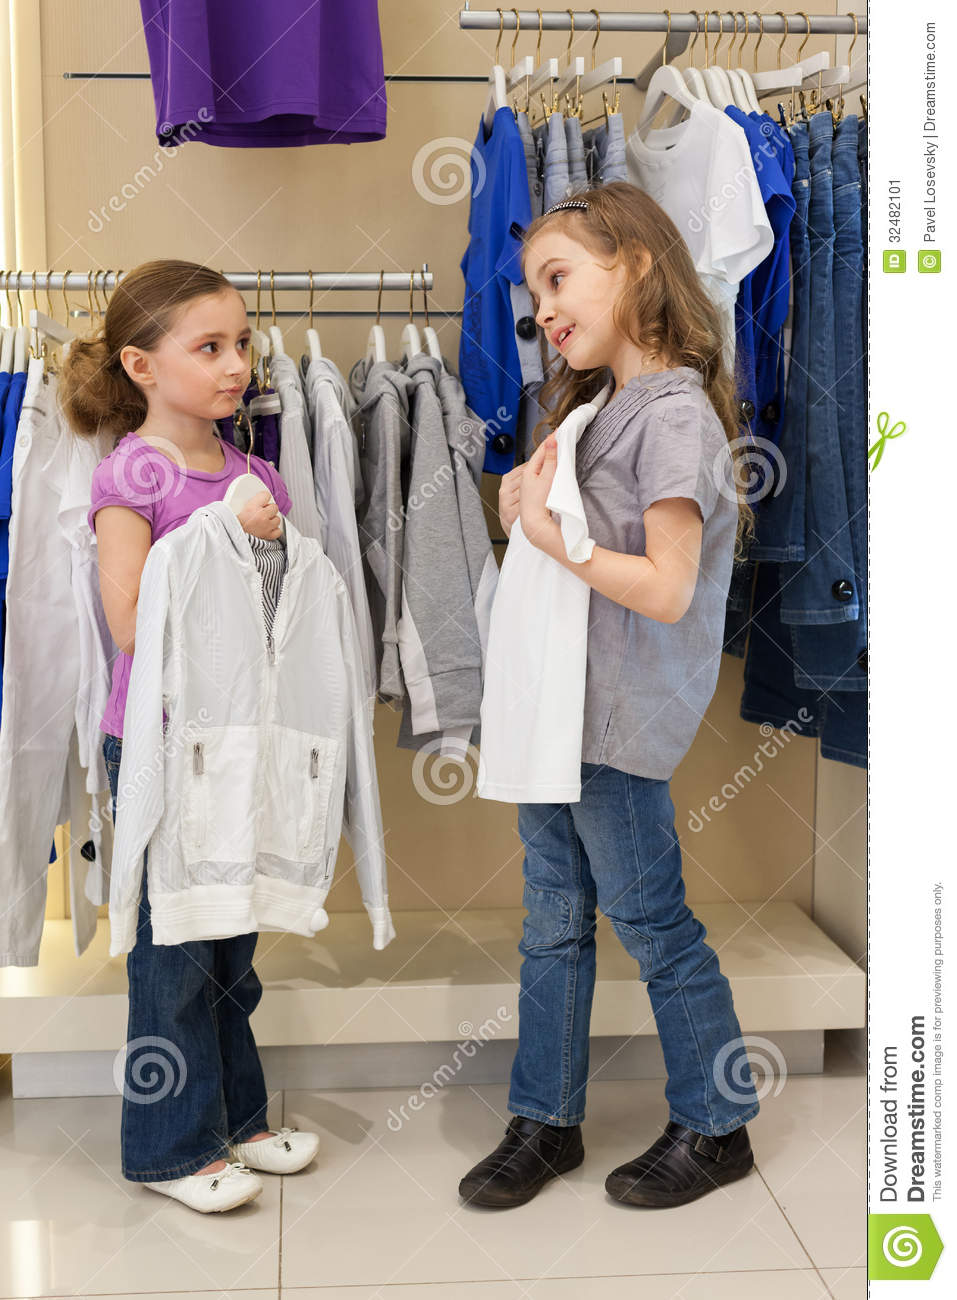 Two little girls try on clothes in a store childrens clothes